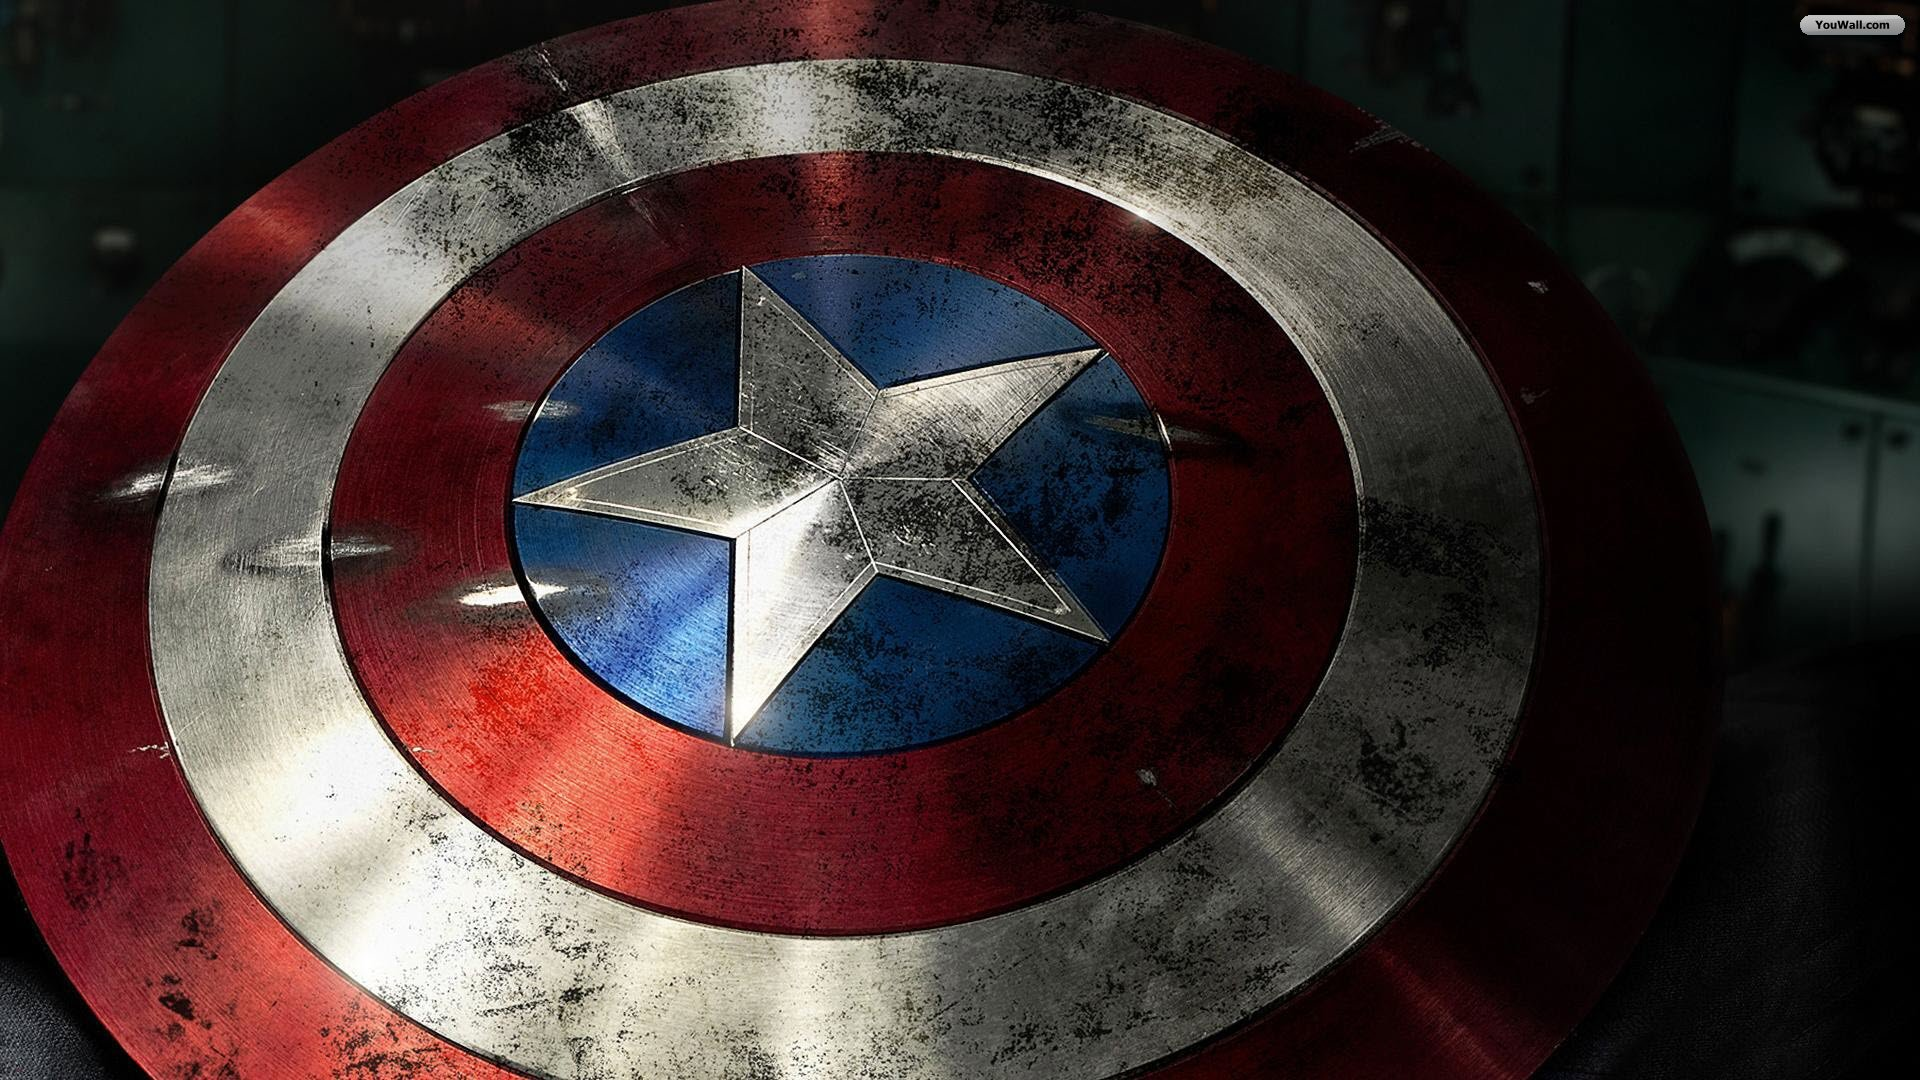 Captain America Shield Wallpaper   wallpaperwallpapersfree wallpaper 1920x1080